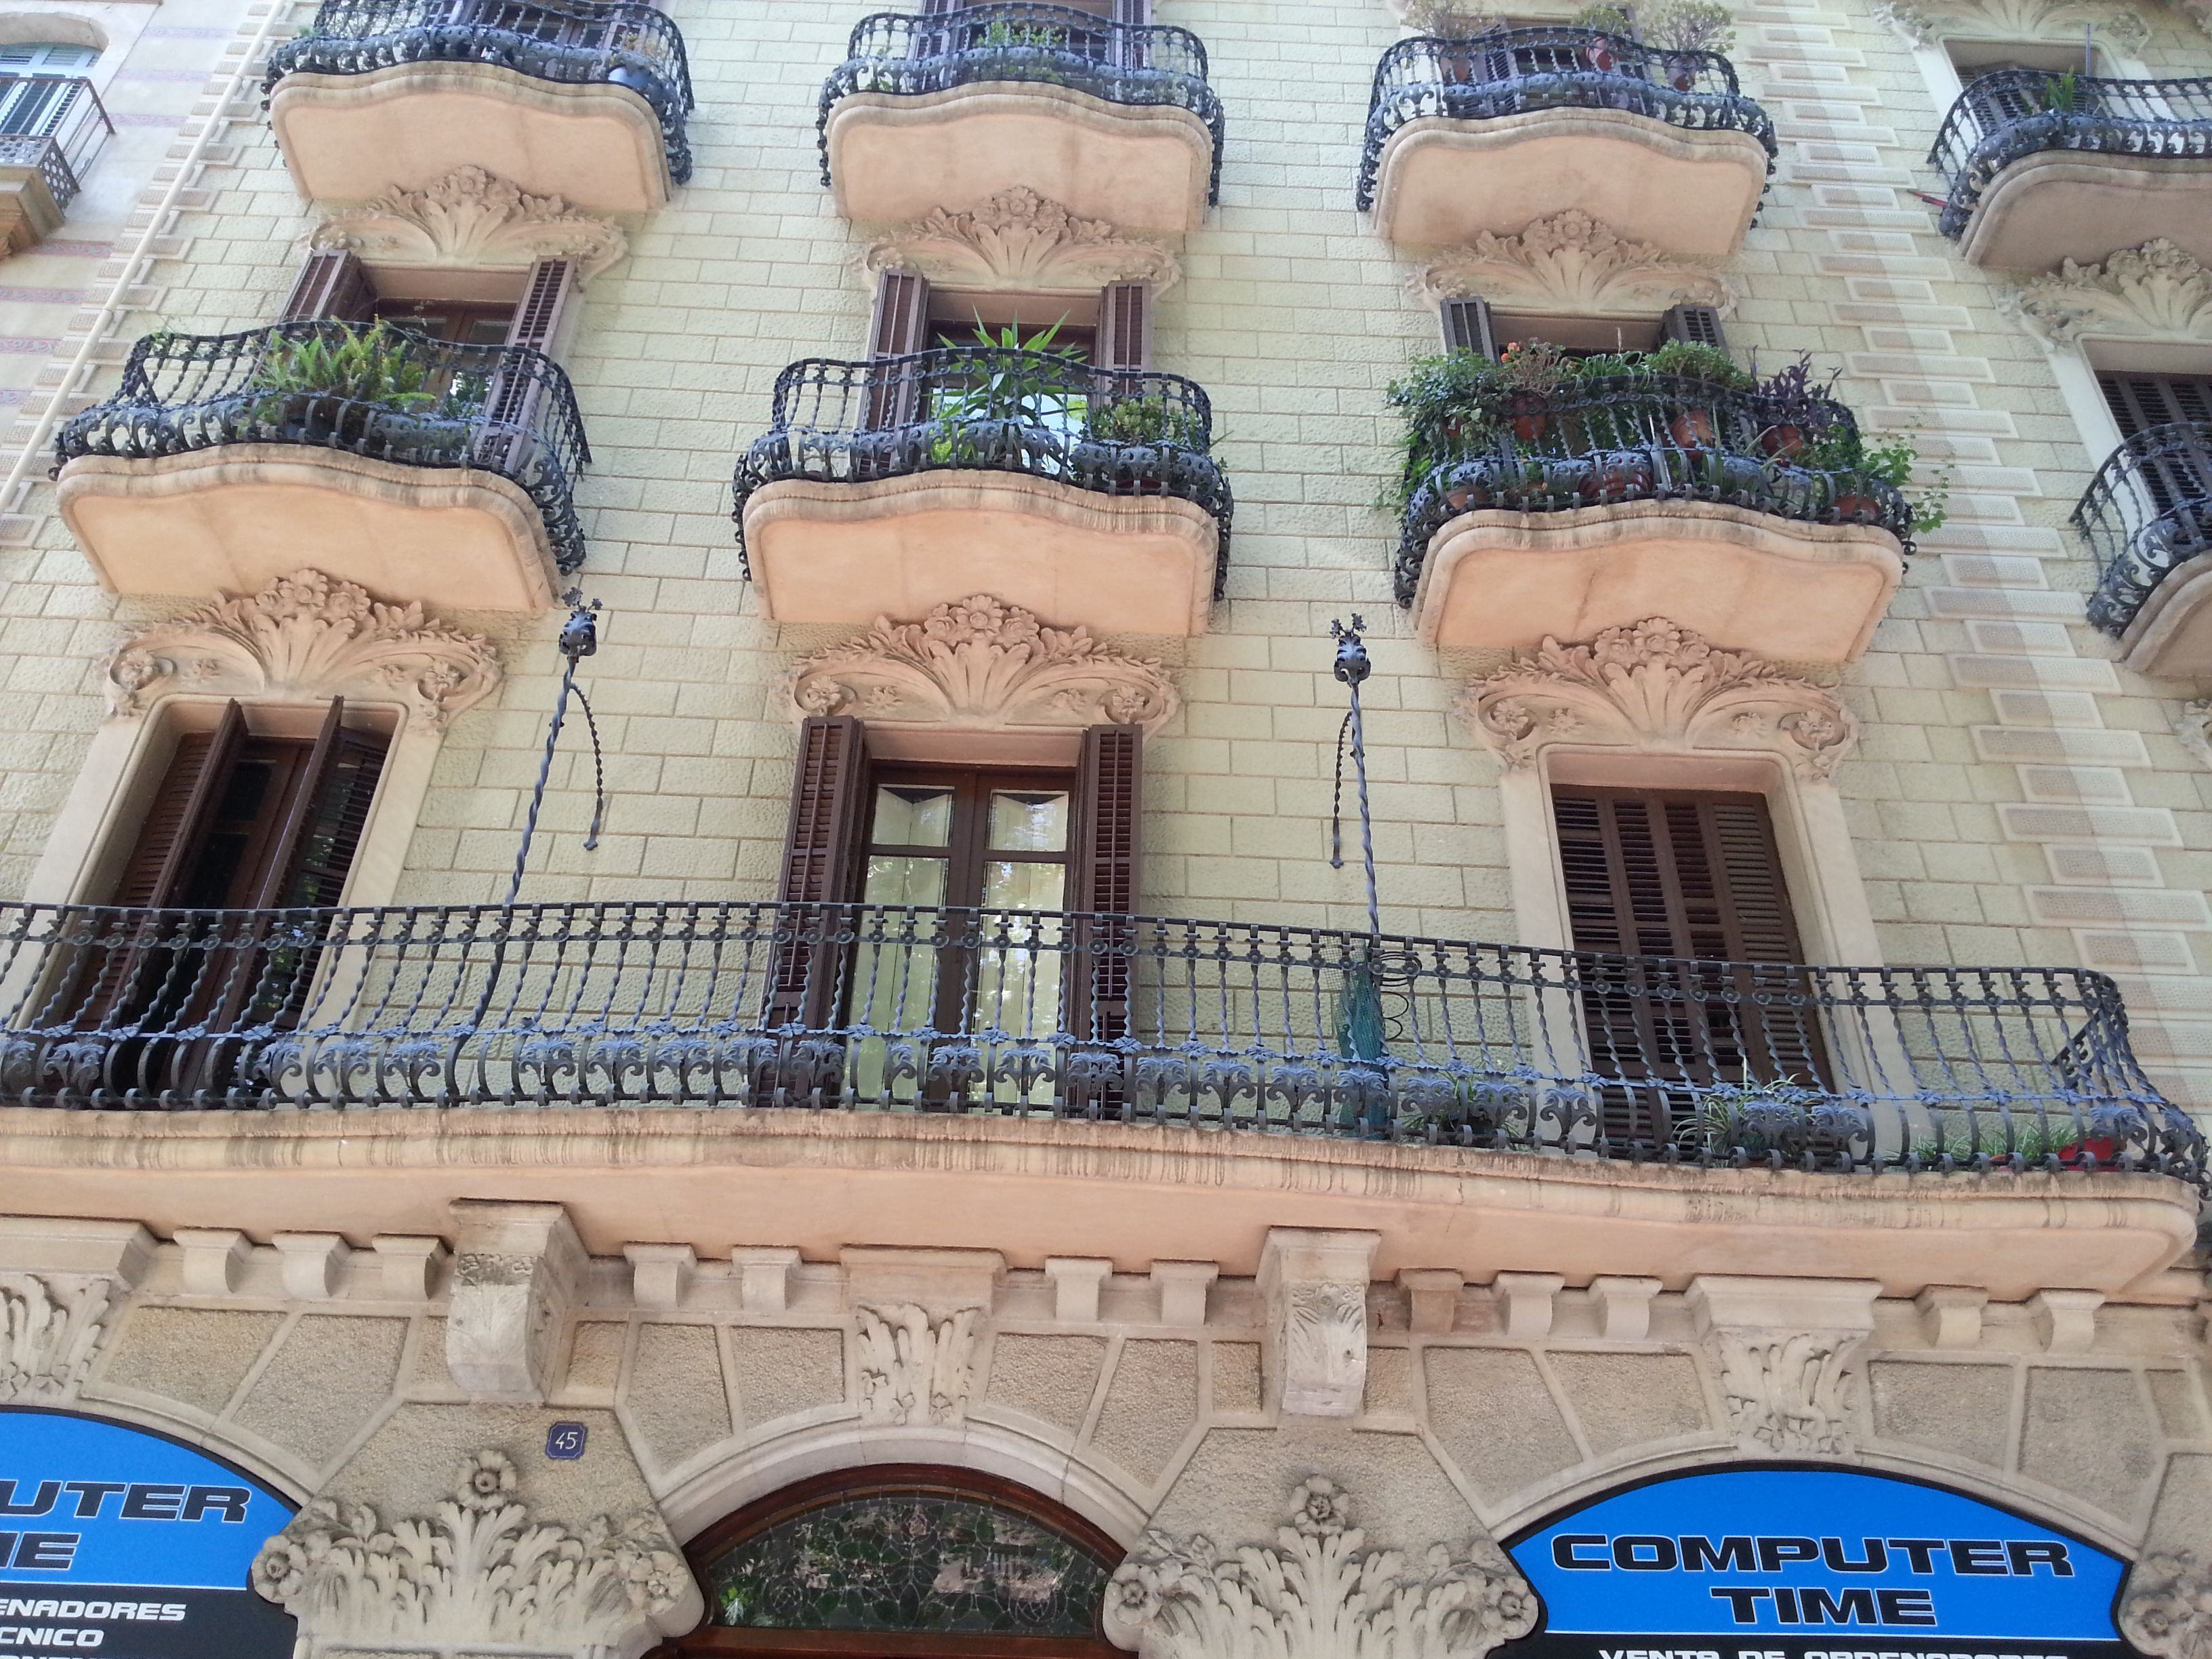 Wrought Iron work and sculpted balconies in Barcelona, Spain.